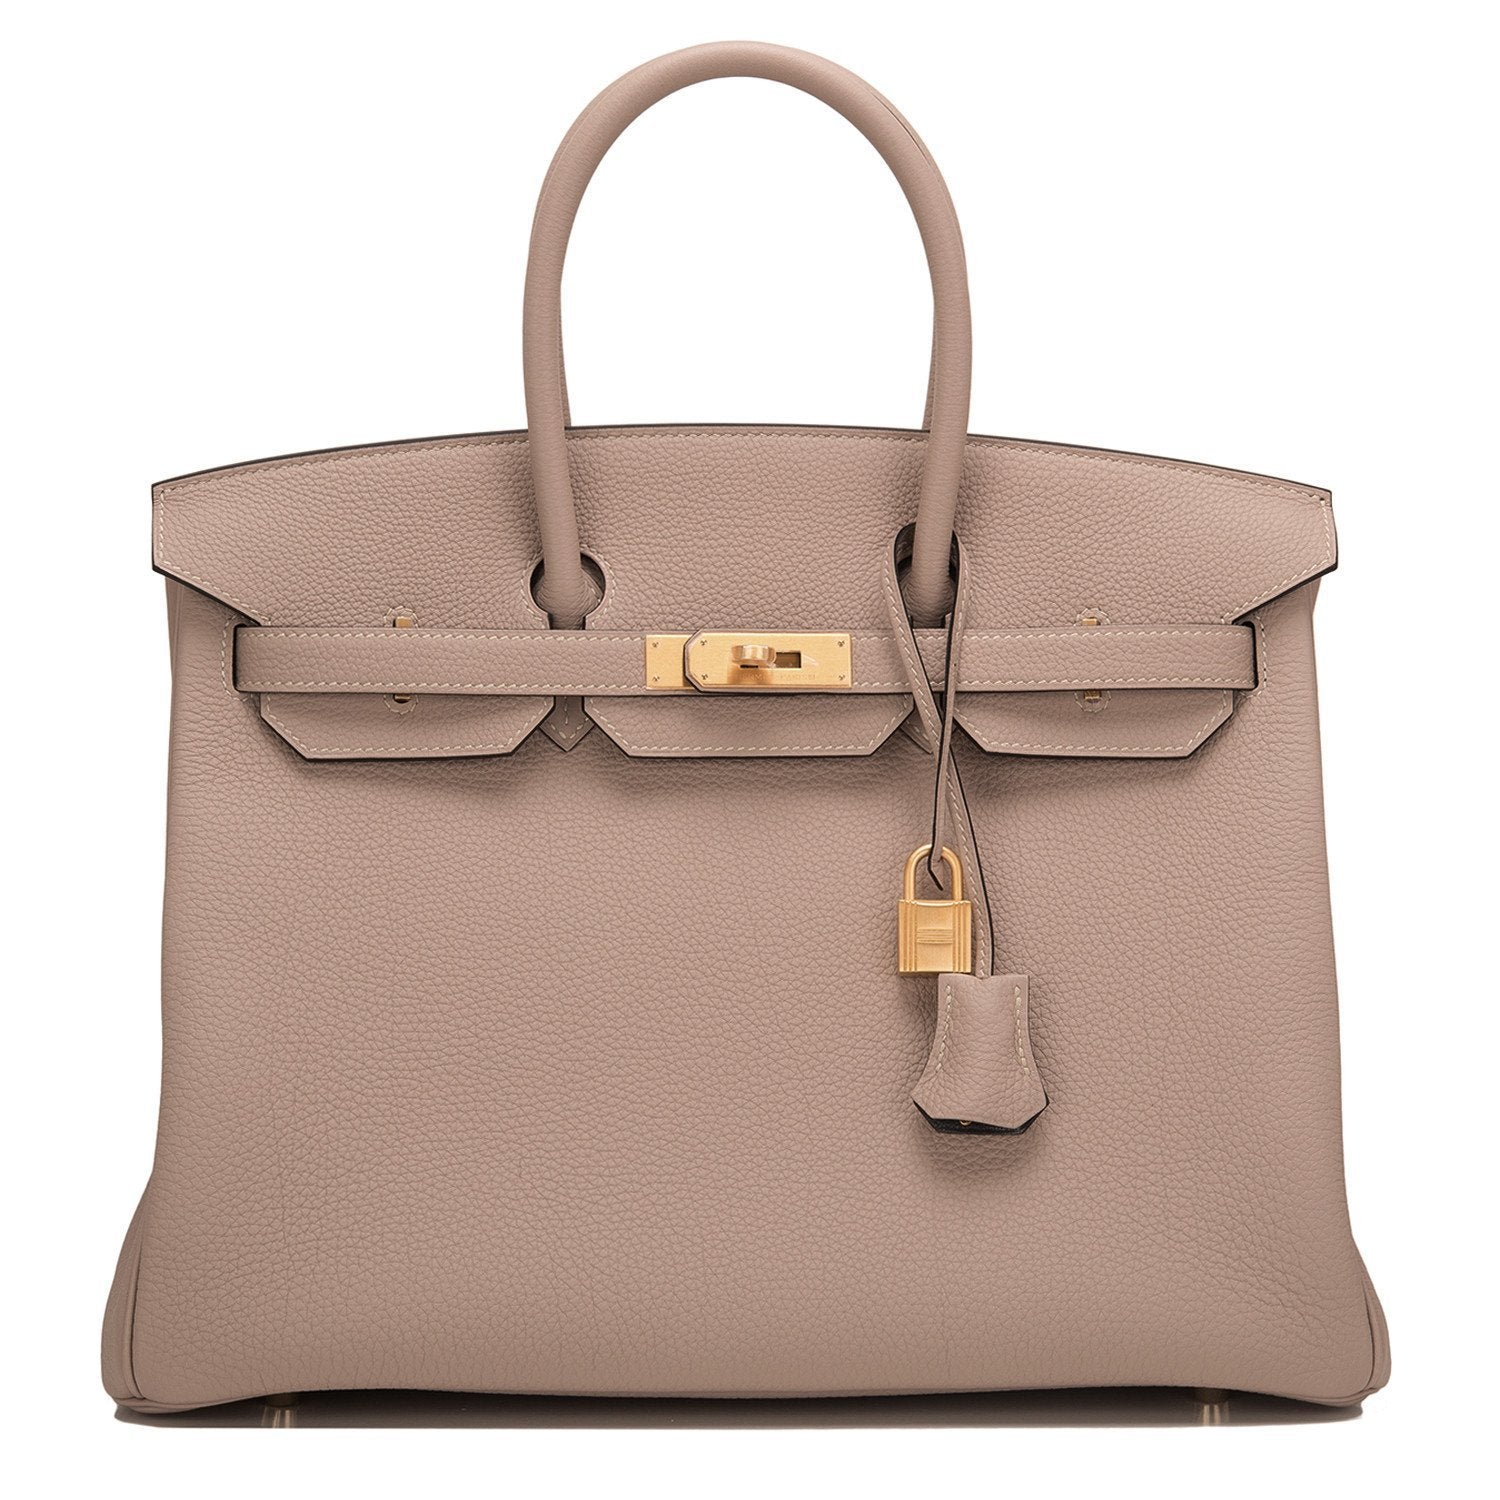 2335317c7756 official store hermes hss bi color gris tourterelle and ardoise togo birkin  35cm brushed gold hardware